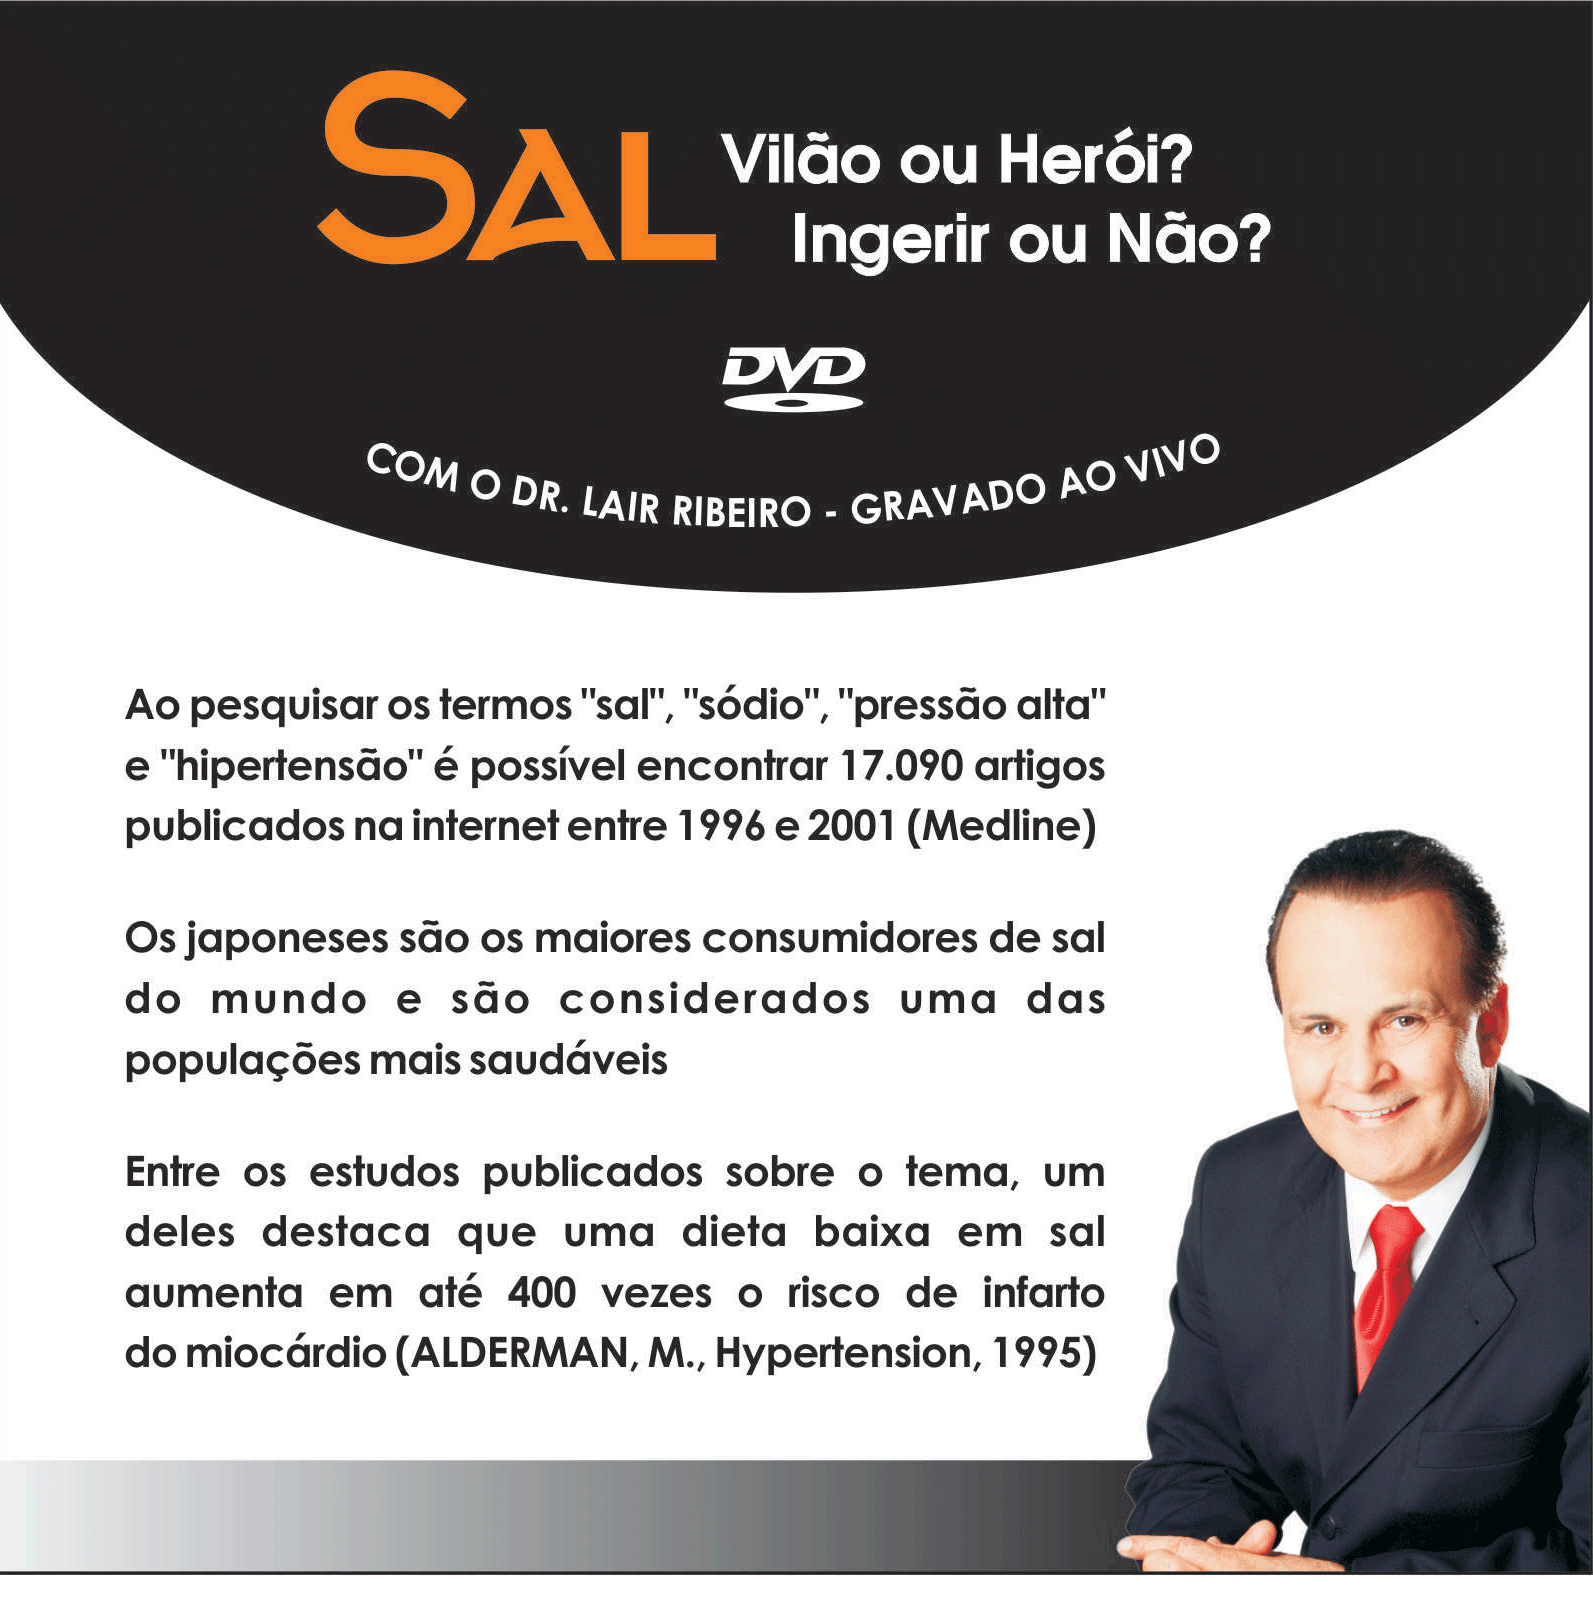 A5---Lair-Ribeiro-Kit-DVDs---Sal-(1)